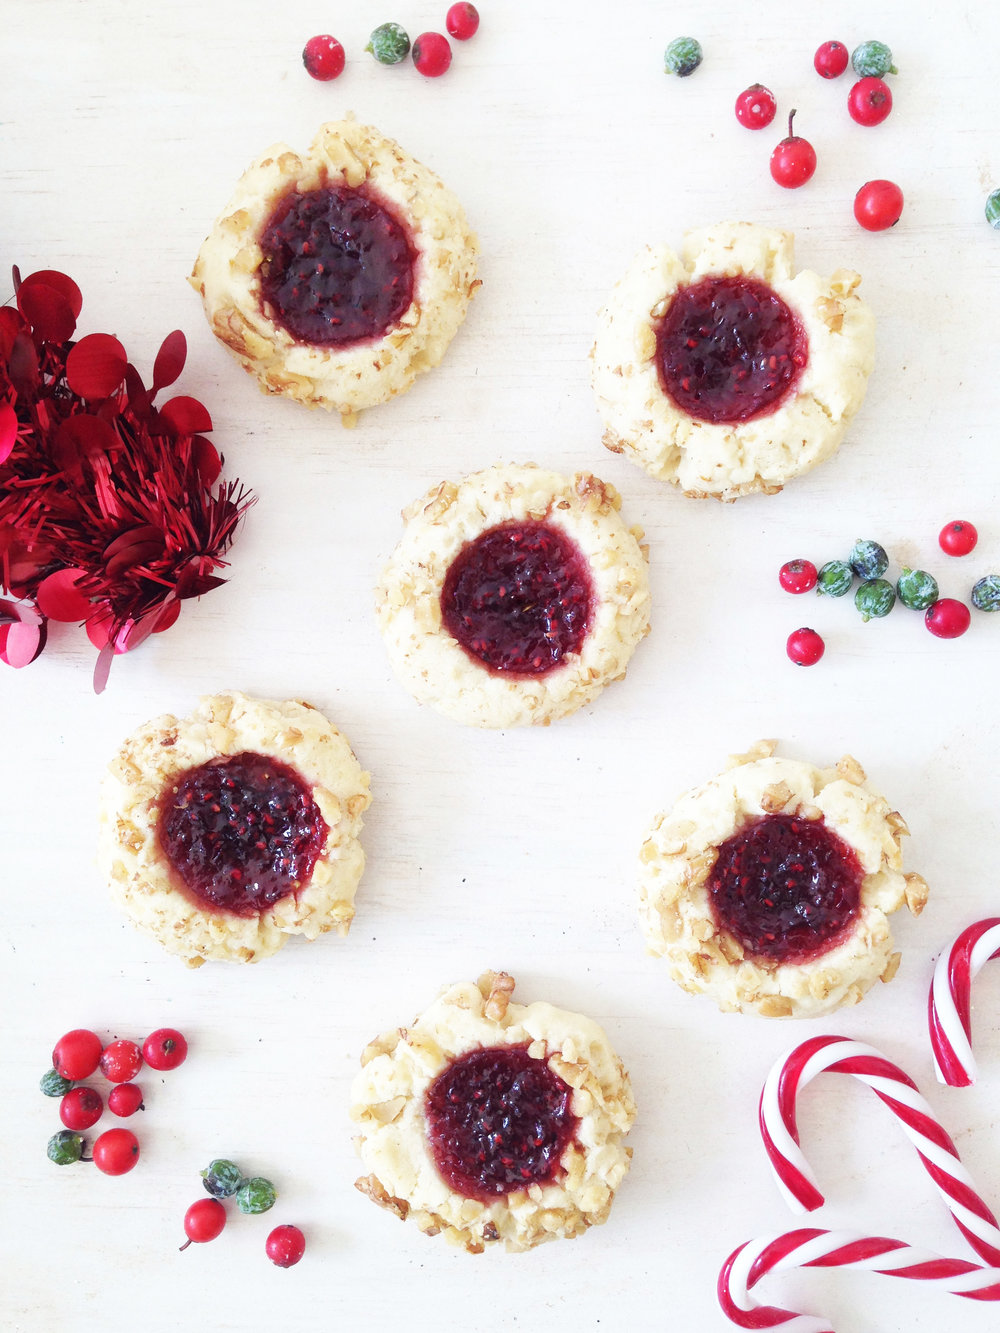 Jam Thumbprint Cookie $1.70